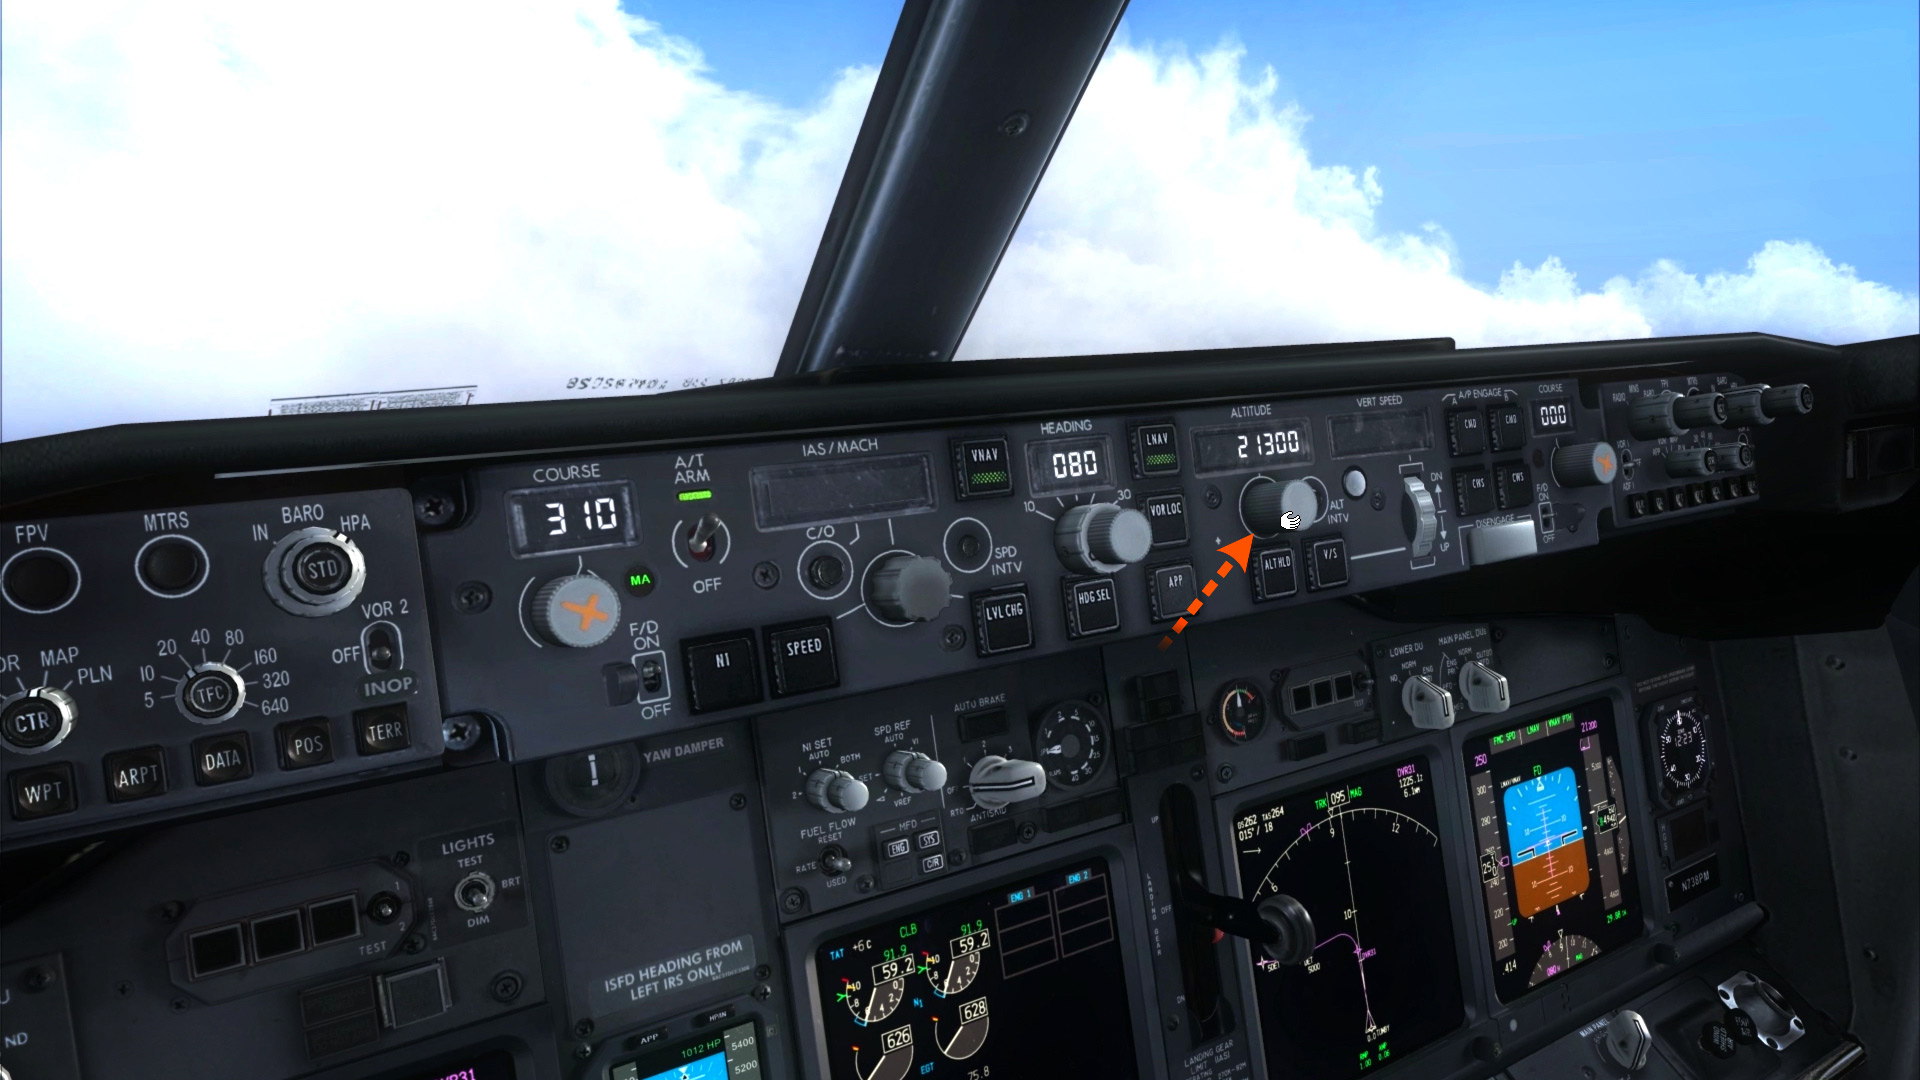 The Ultimate 737 FlightWork Preview - Angle of Attack